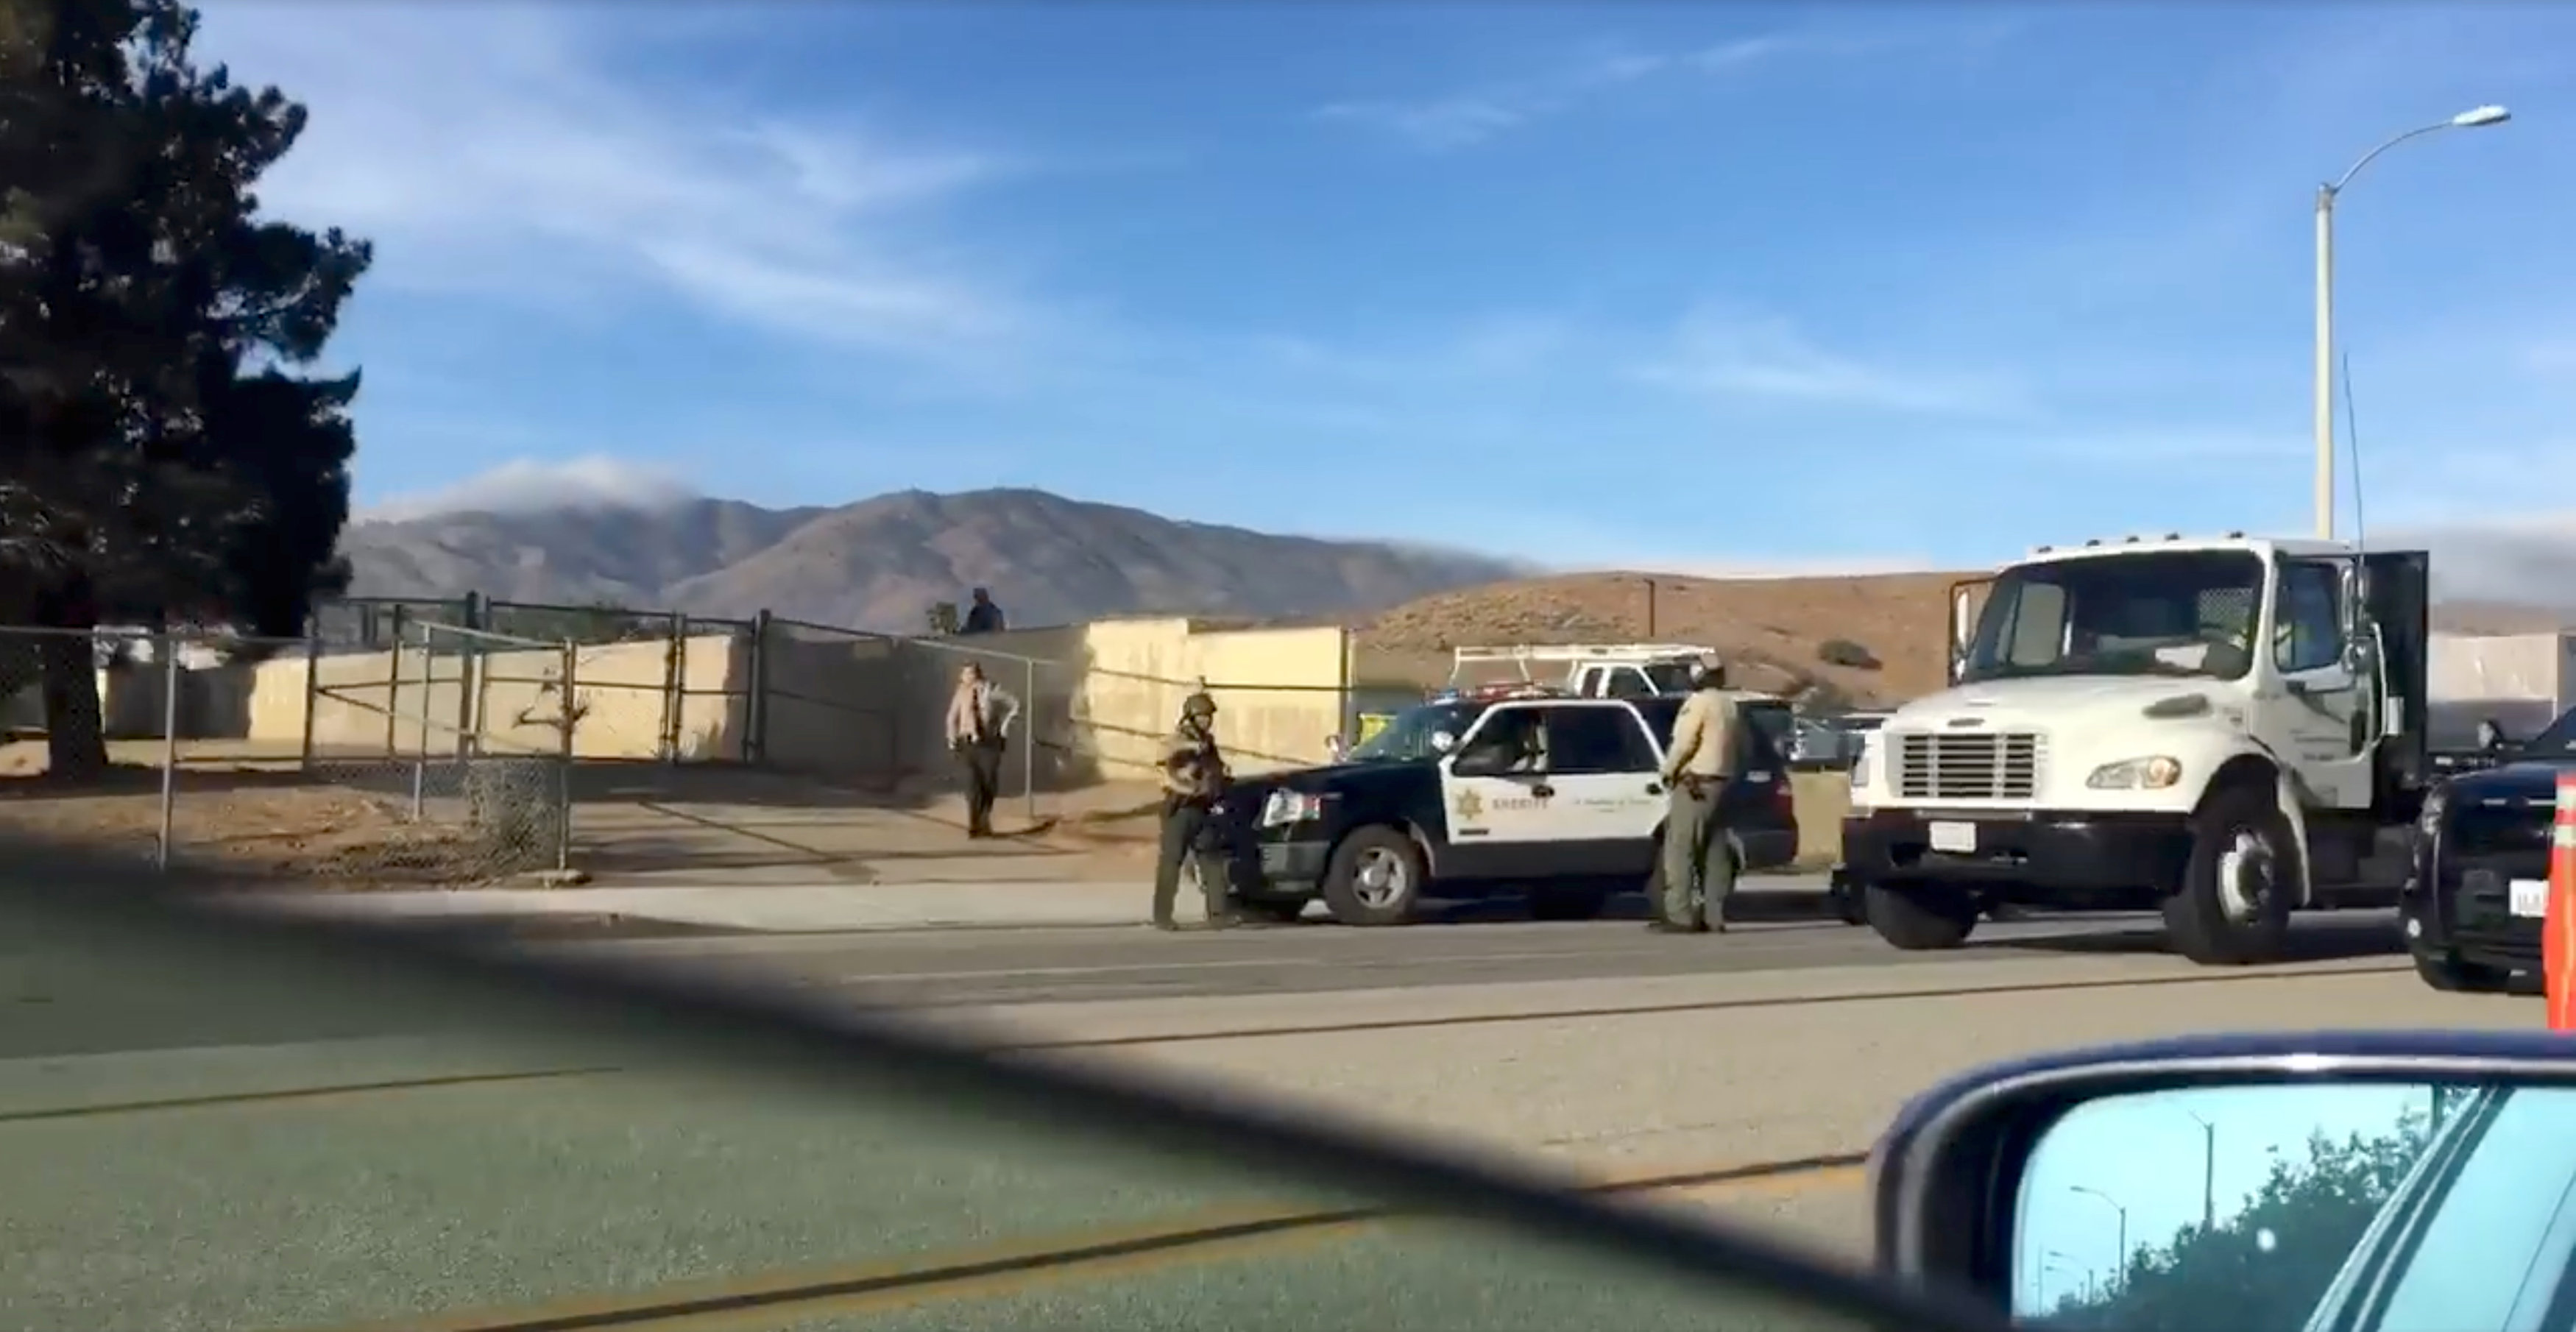 Police vehicles are seen on the road near Highland High School, in Palmdale, California, U.S., May 11, 2018 in this picture grab obtained from social media video. MELENDEZ N JUNIOR/via REUTERS